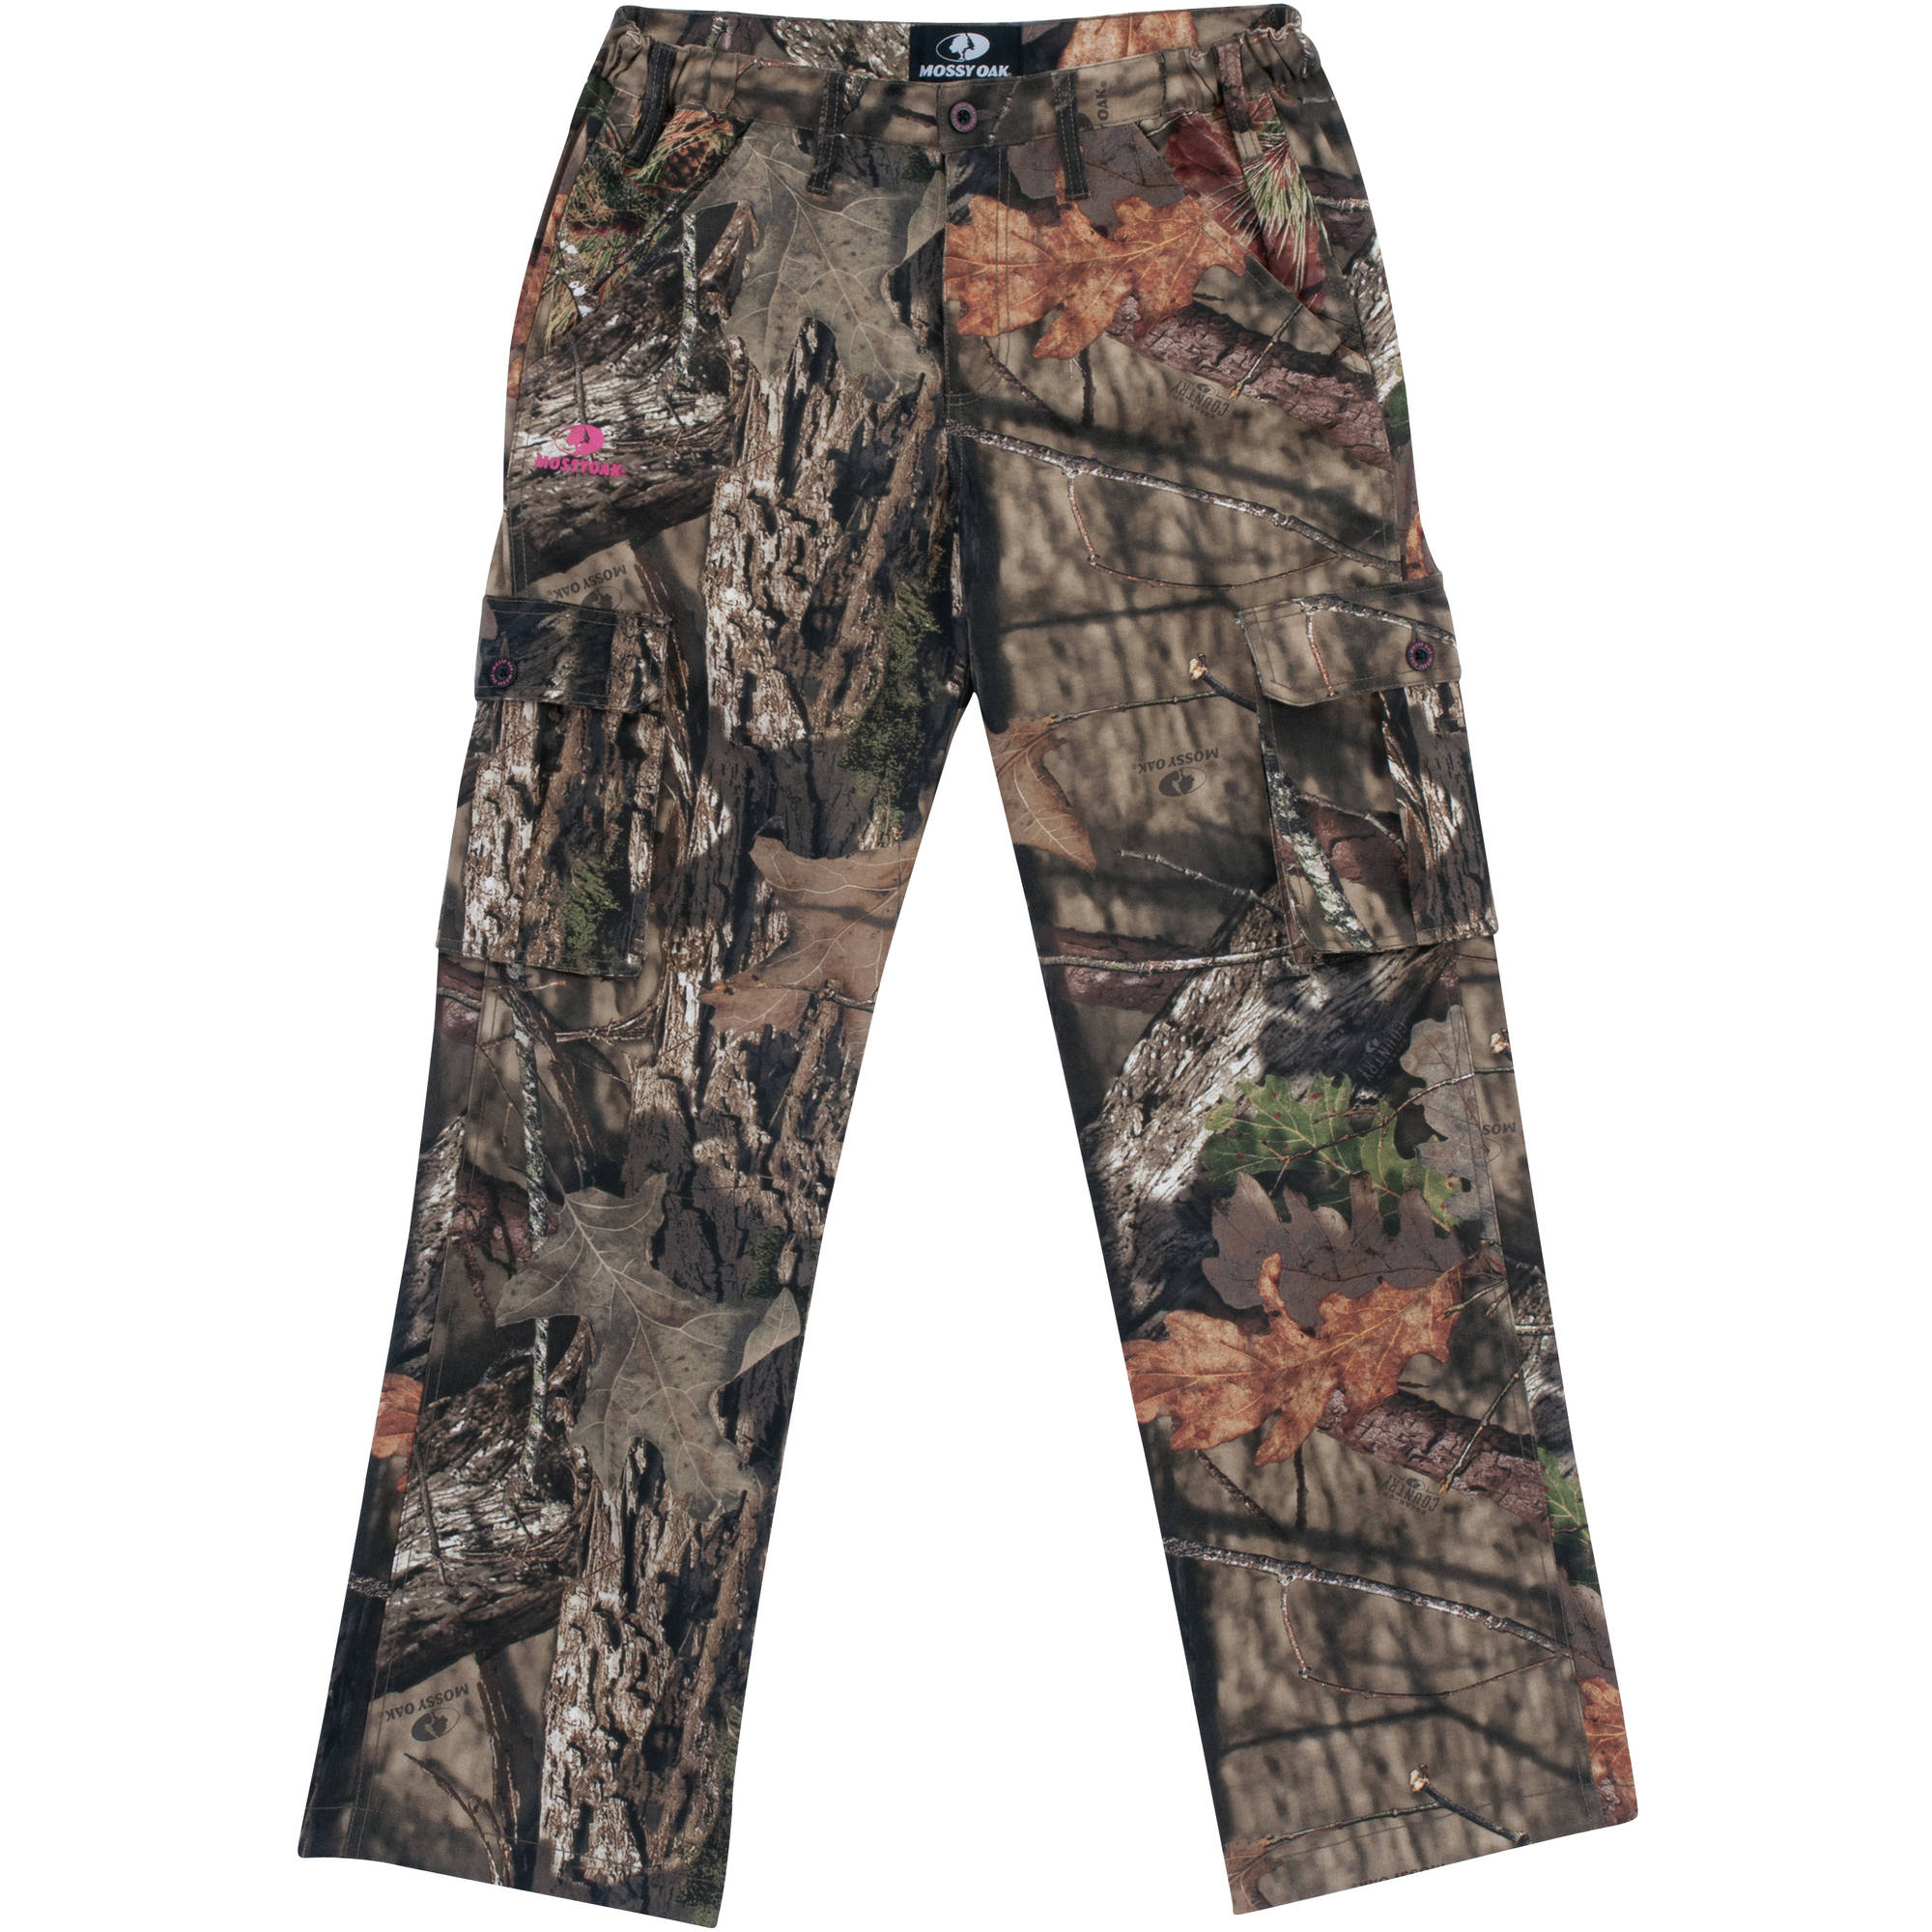 Women's Cargo Pants, Available in Realtree and Mossy Oak